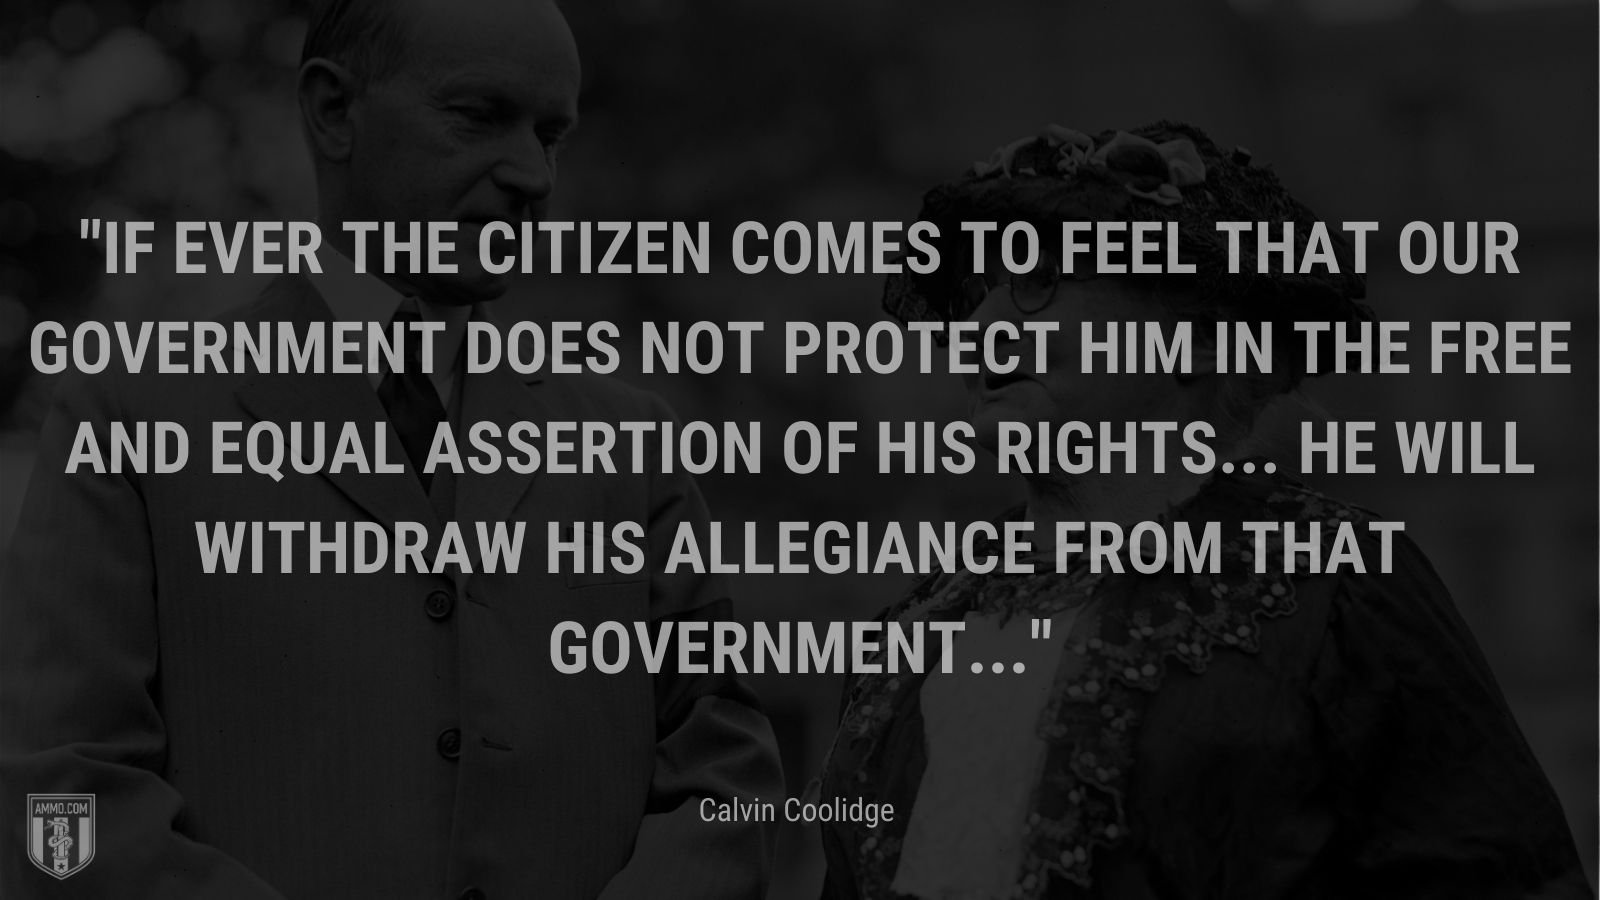 """""""If ever the citizen comes to feel that our government does not protect him in the free and equal assertion of his rights... he will withdraw his allegiance from that government..."""" - Calvin Coolidge"""